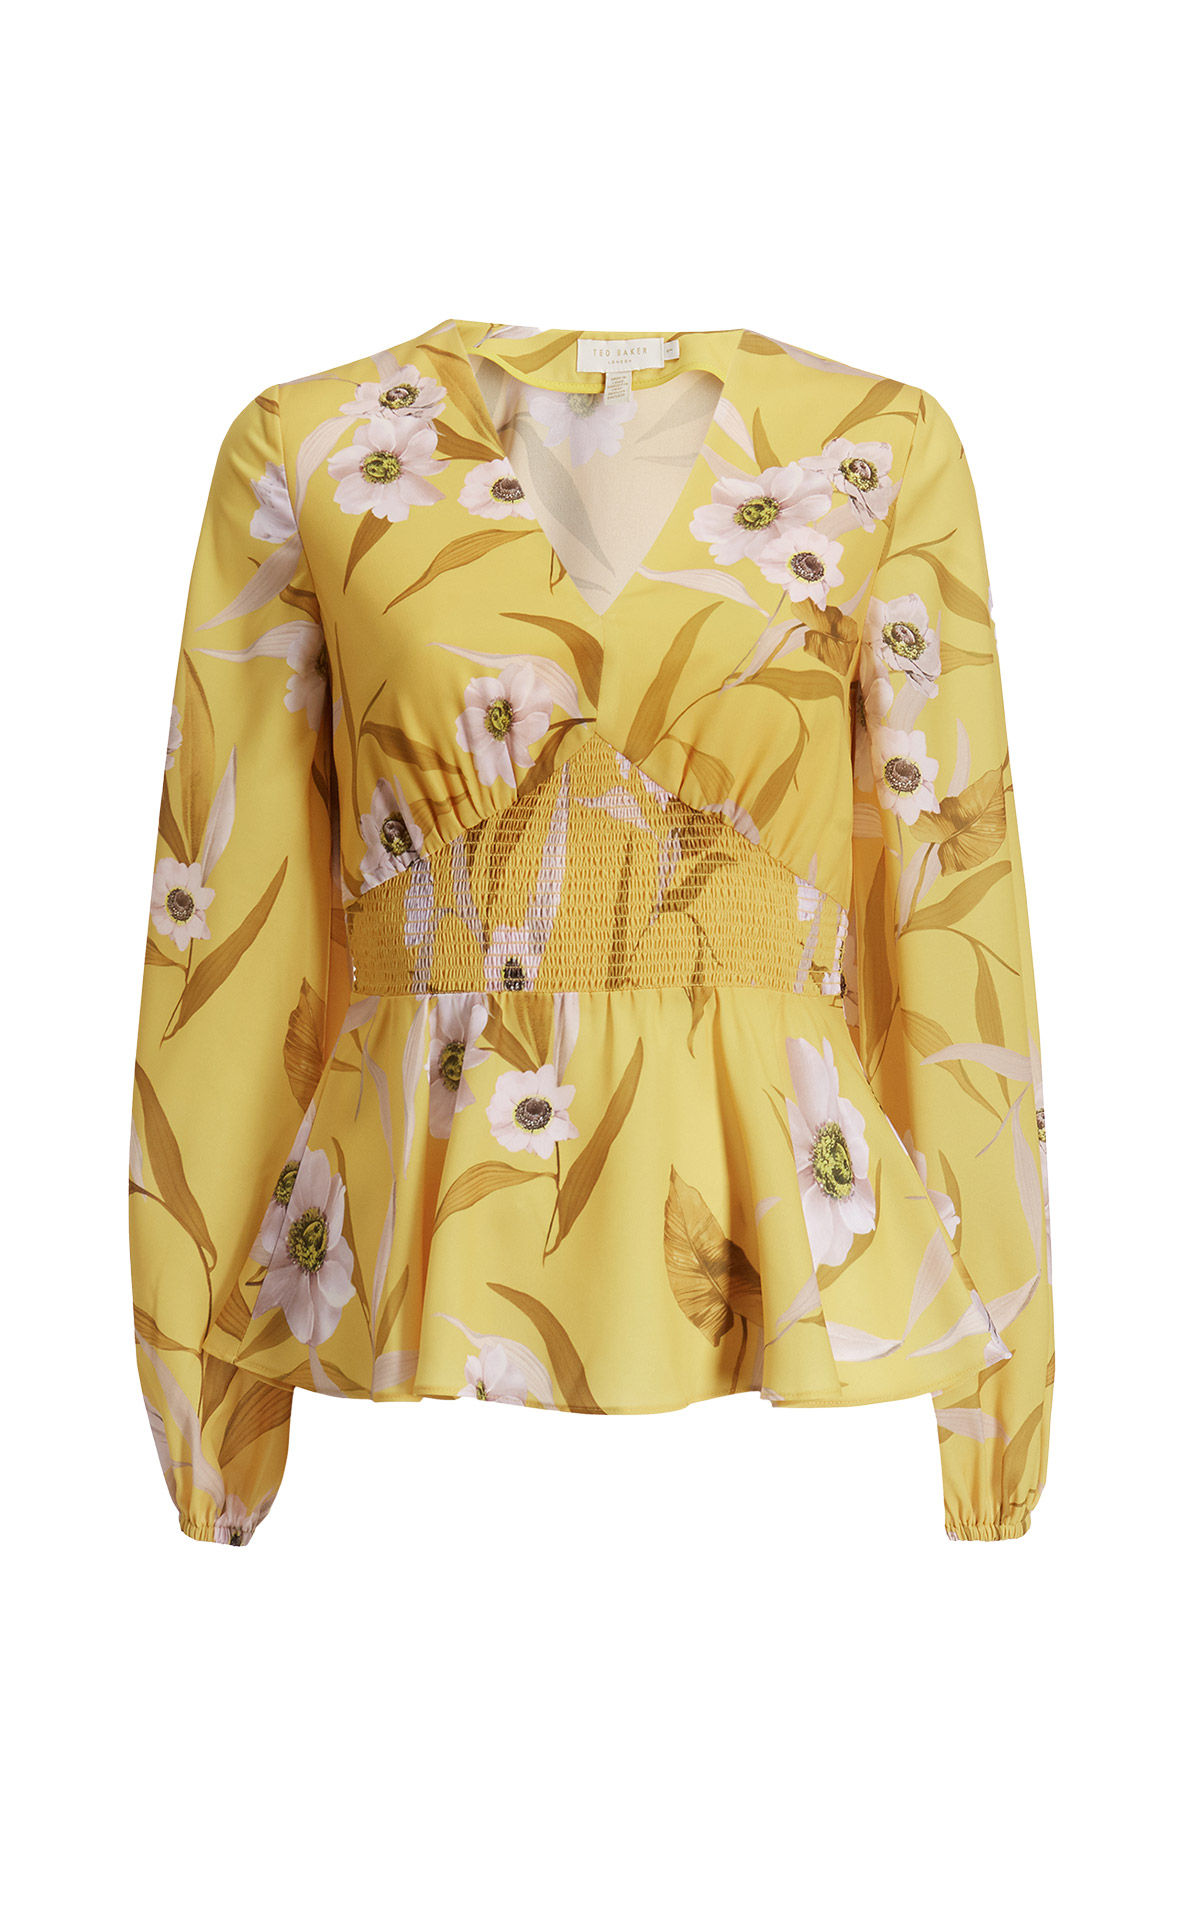 Yellow shirt with flowers Ted Baker